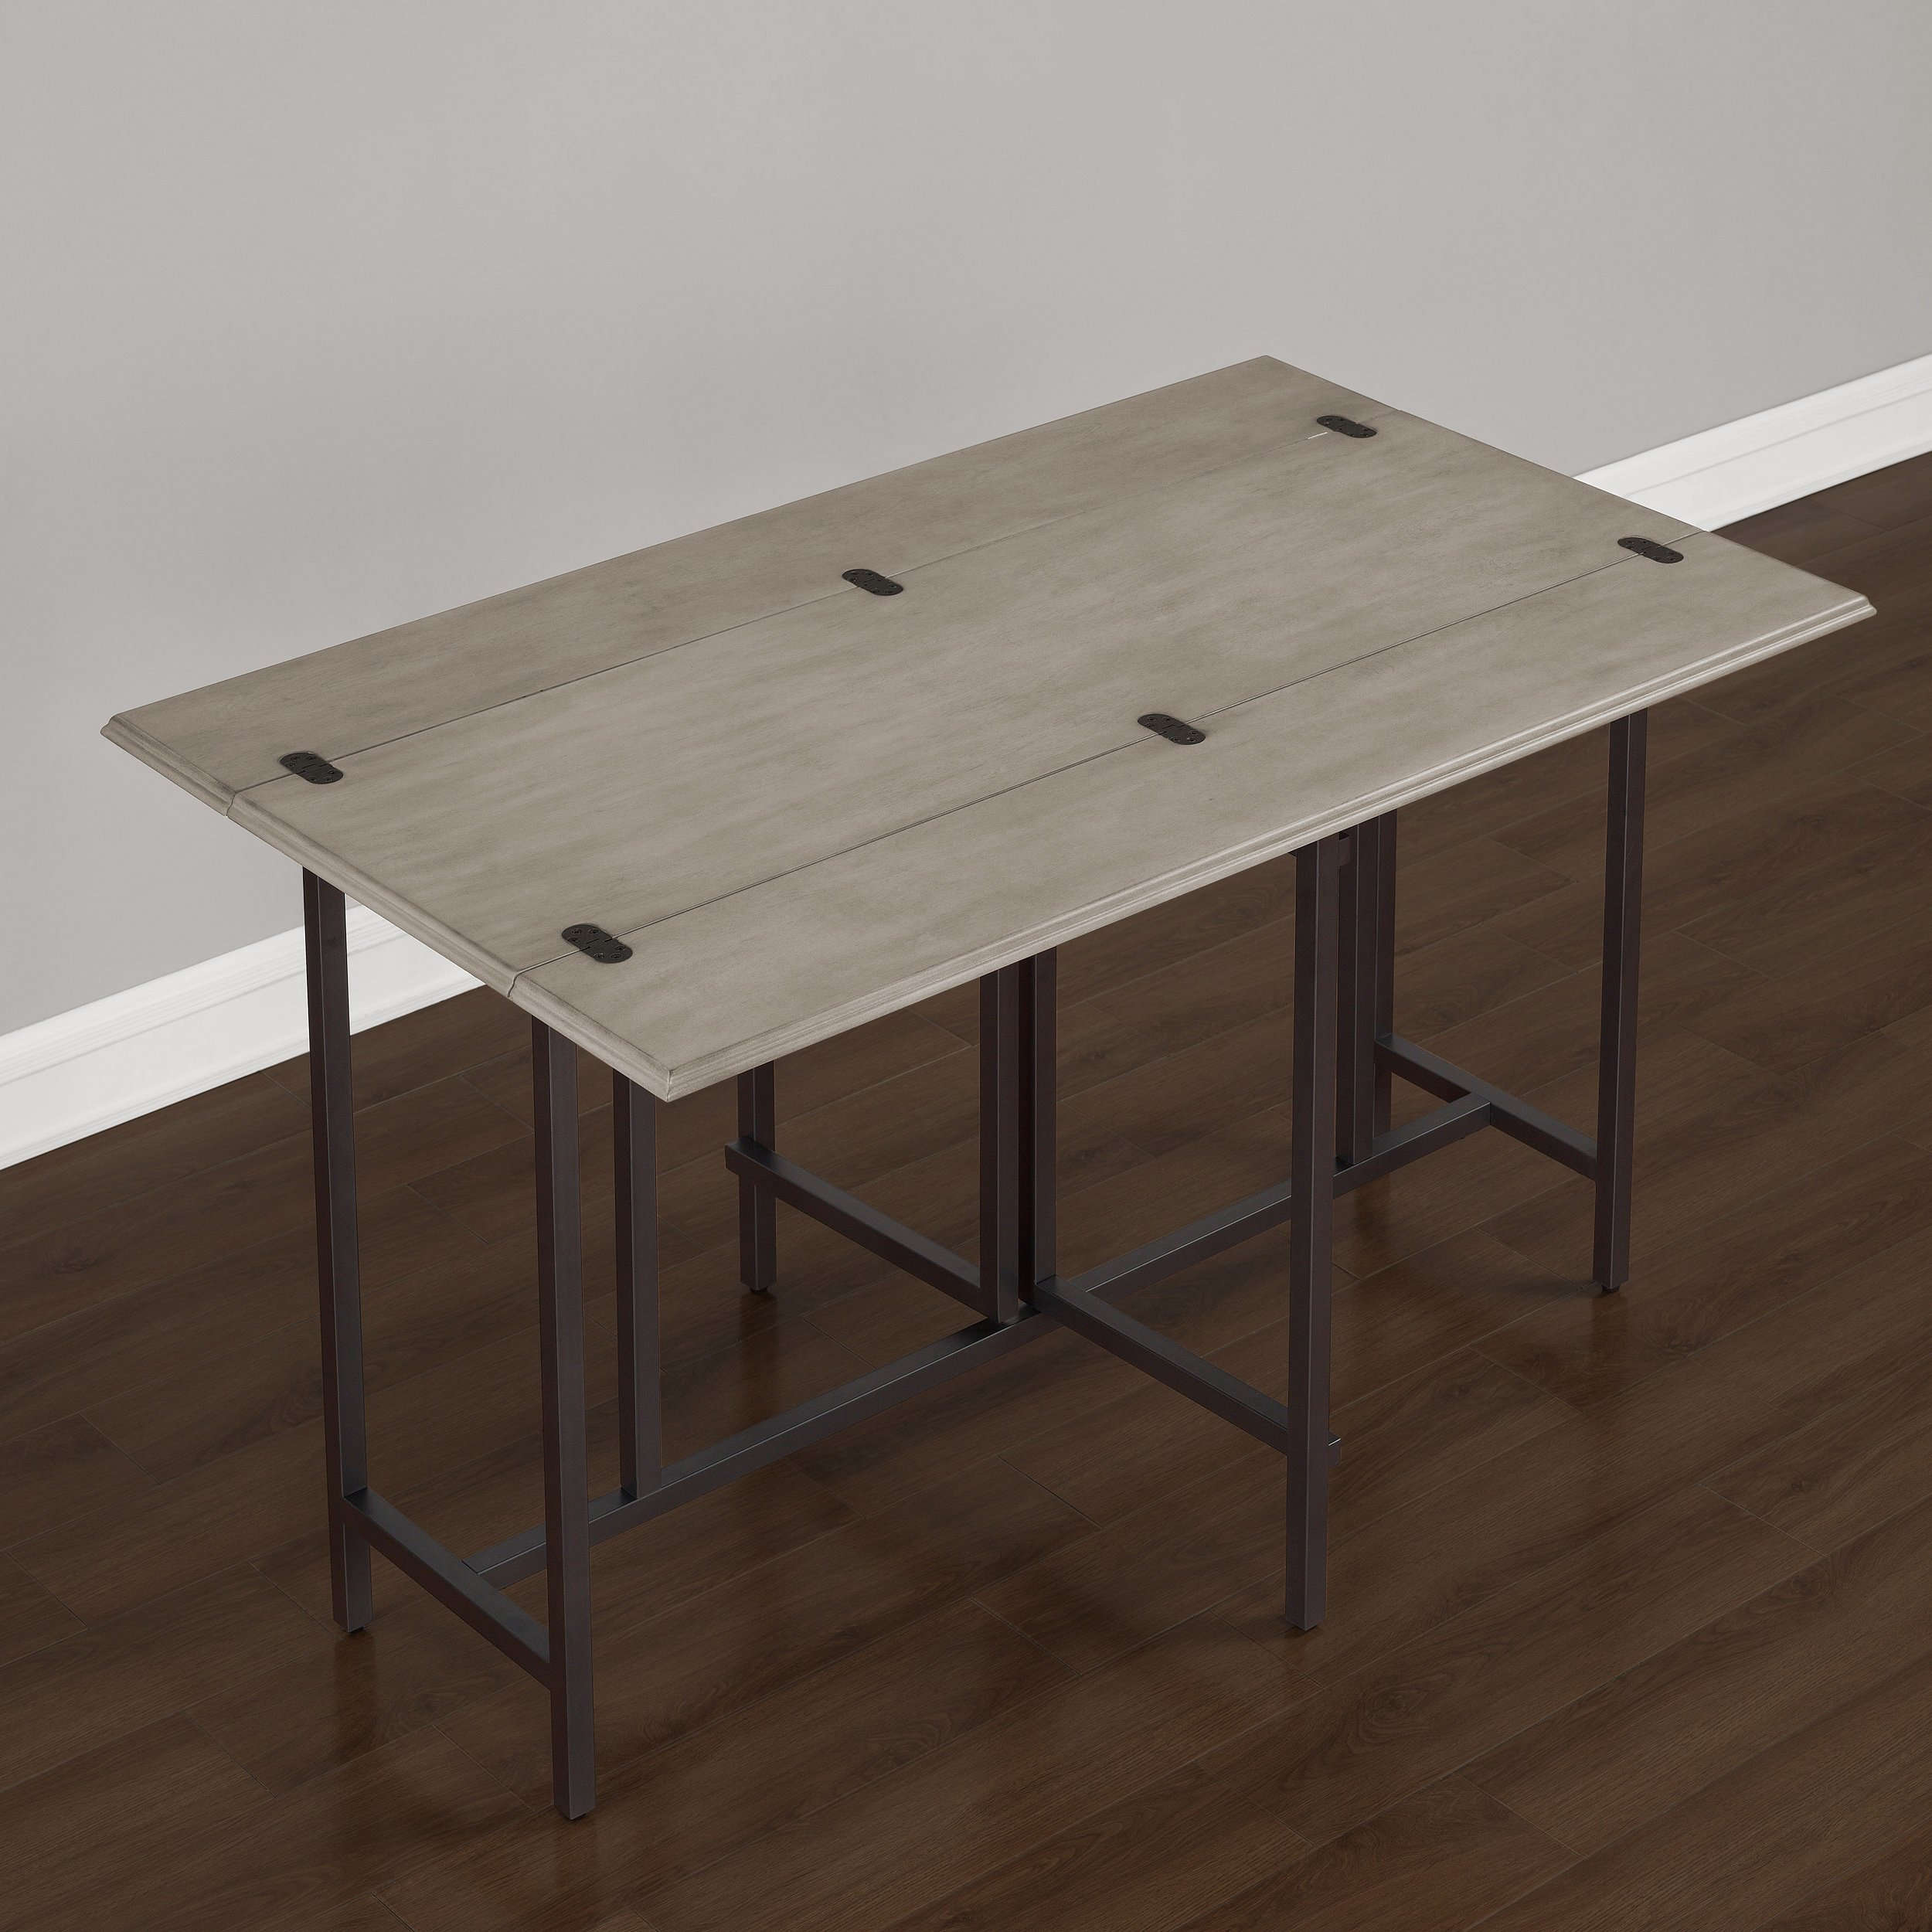 Convertible Dining Table Wood Contemporary Expandable Home Console Kitchen Table by I Love Living (Image #2)